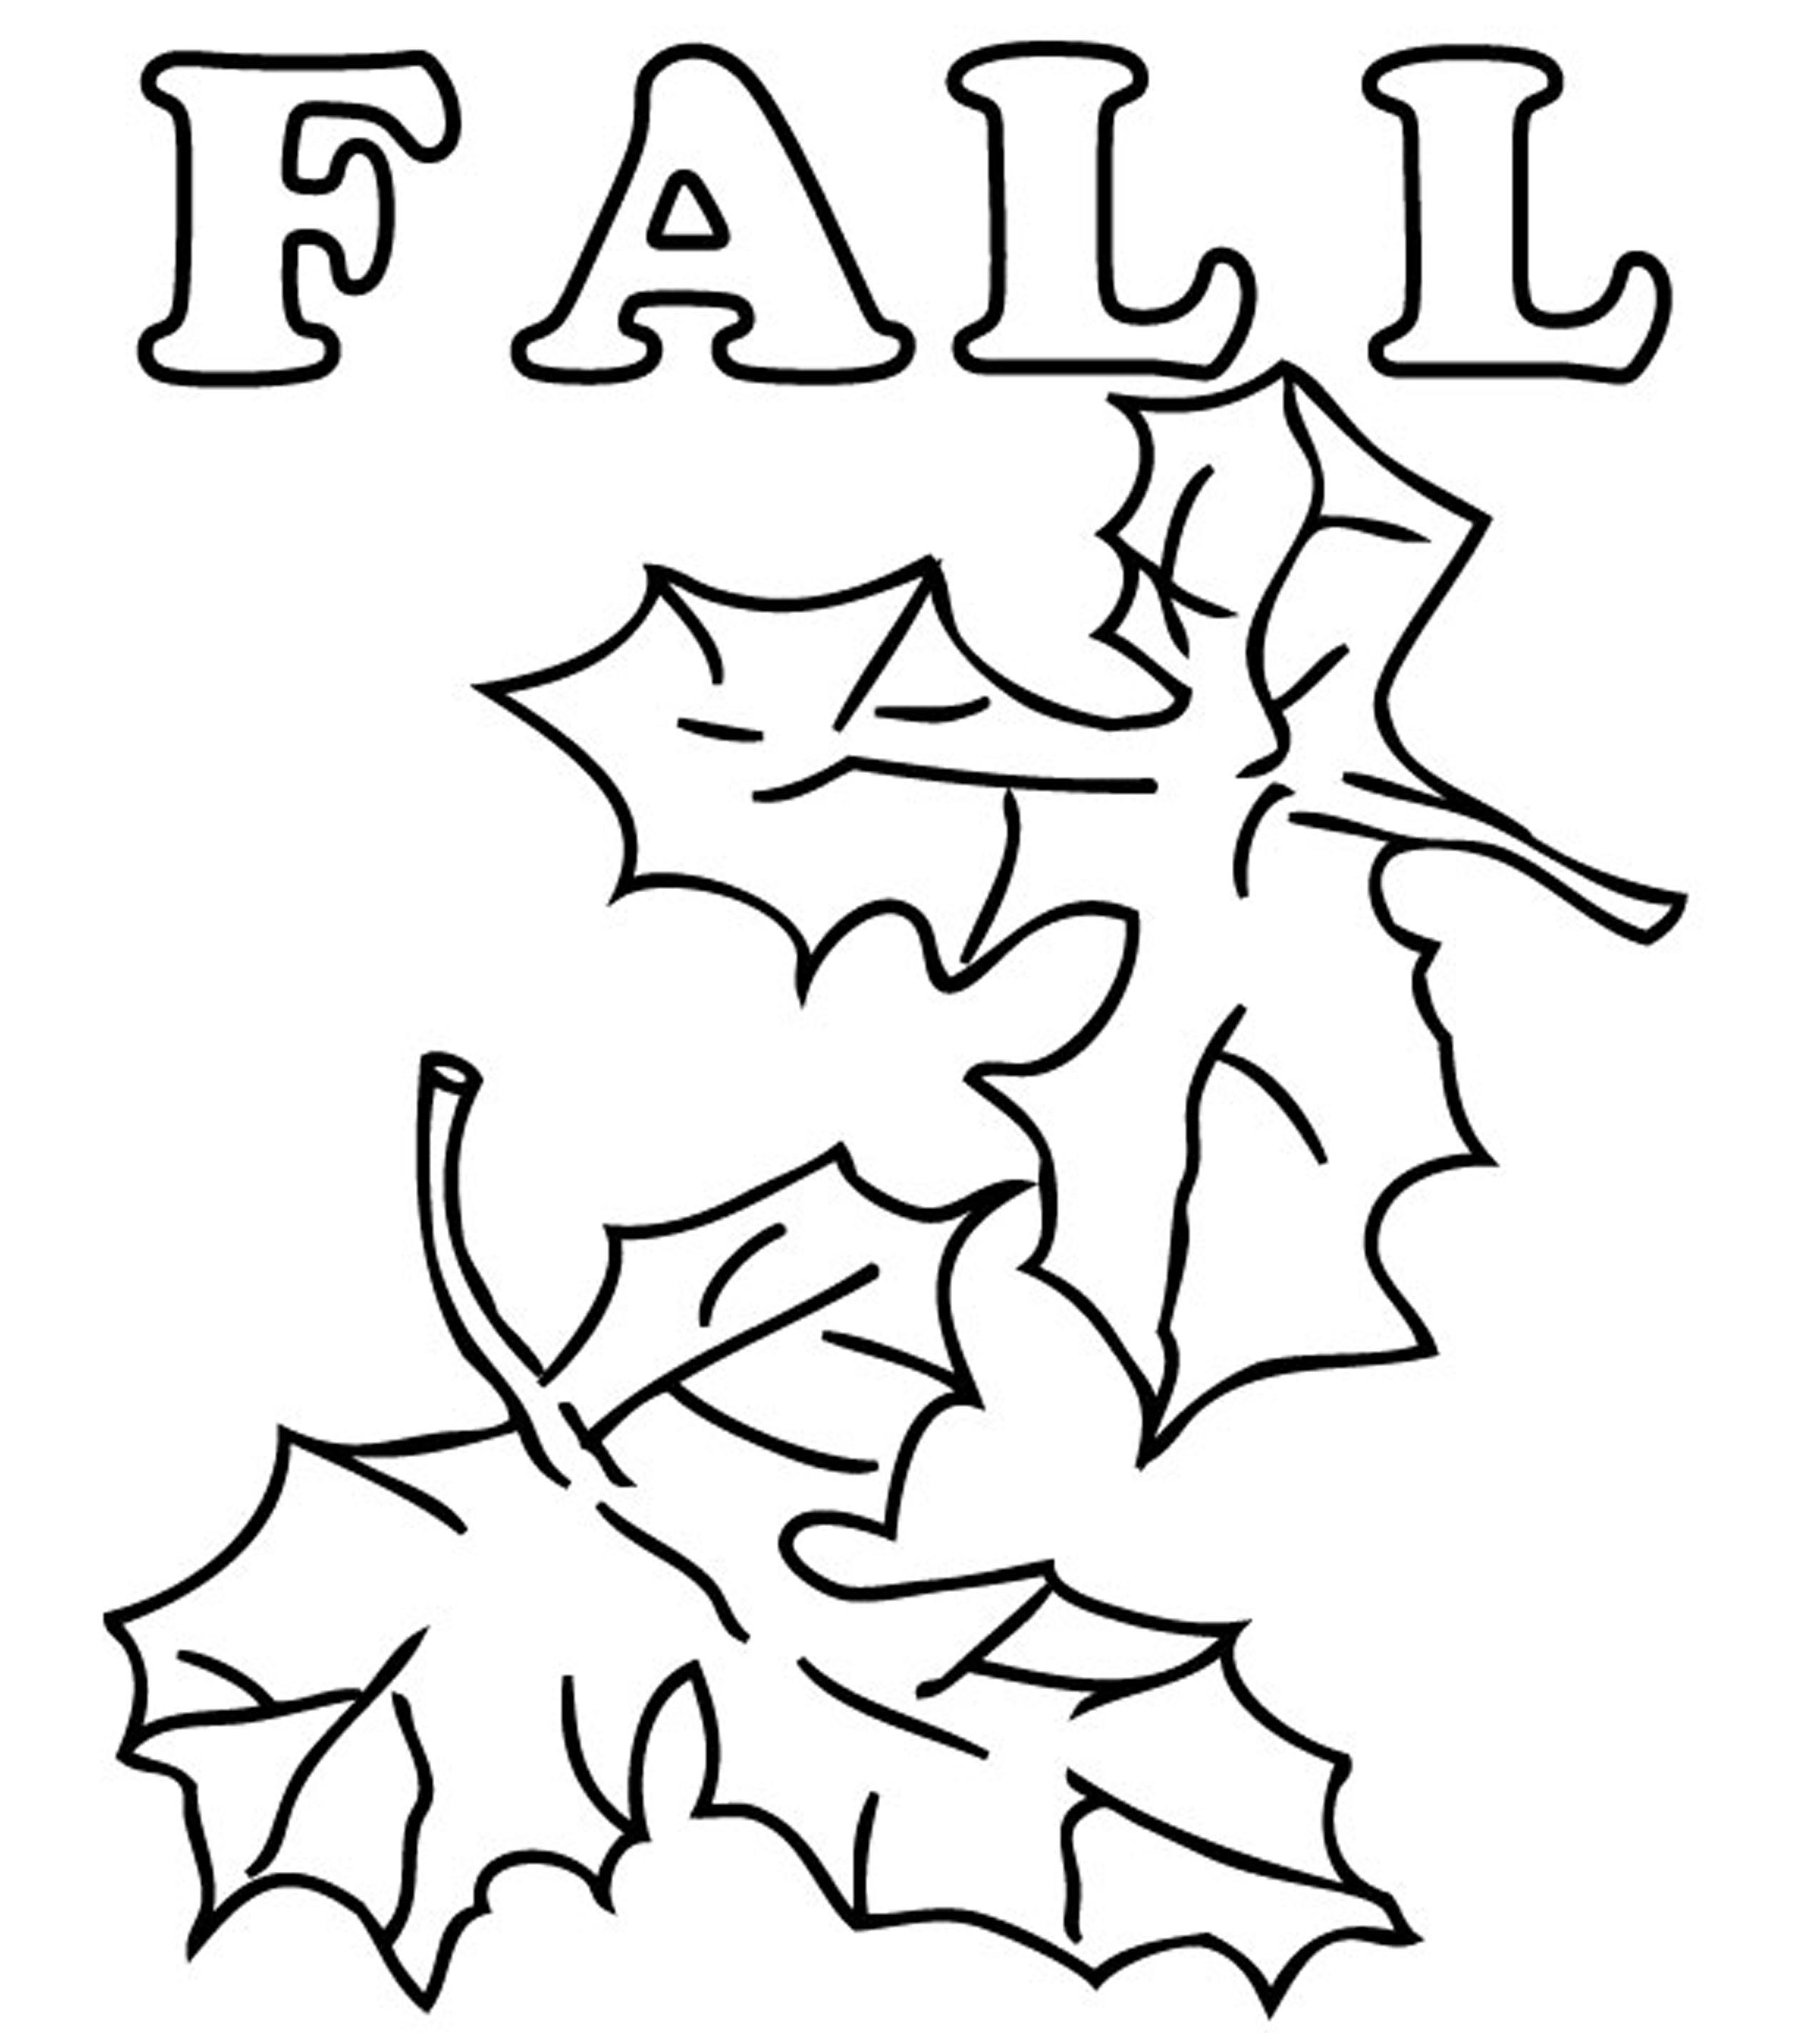 2550x2849 Energy Coloring Pages Of Leaves Free Printable